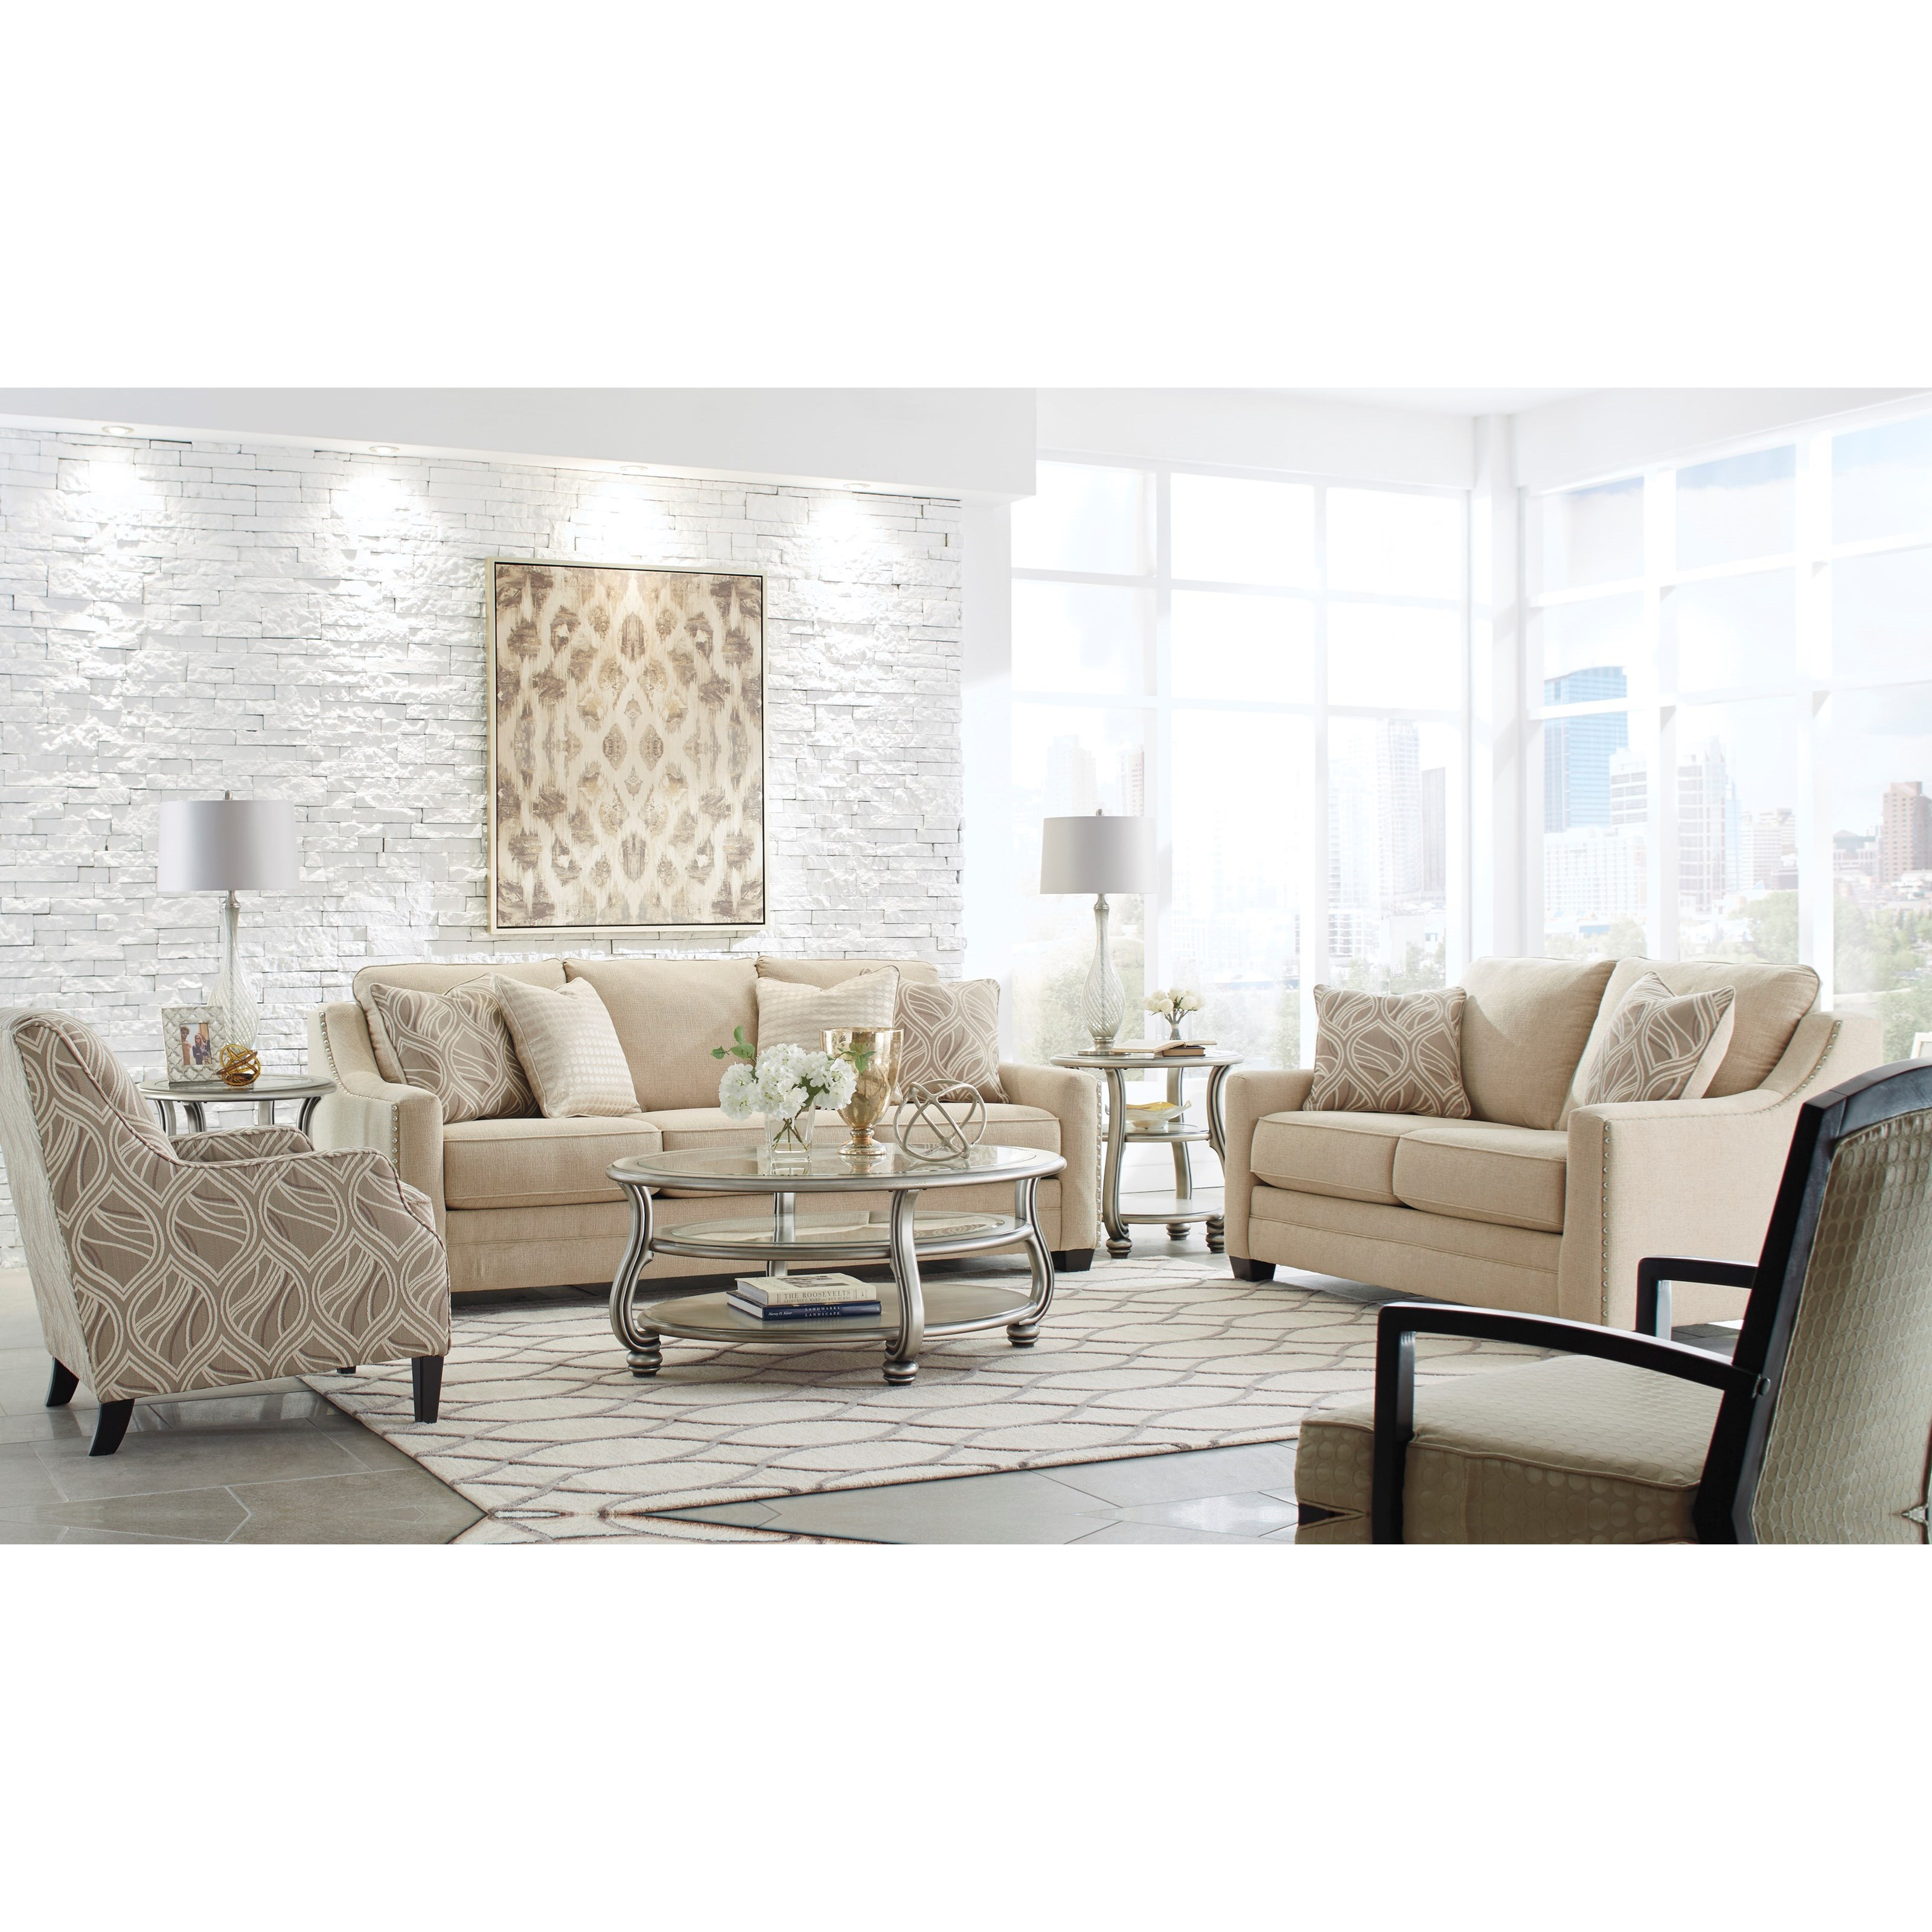 Benchcraft mauricio stationary living room group for Living room group sets